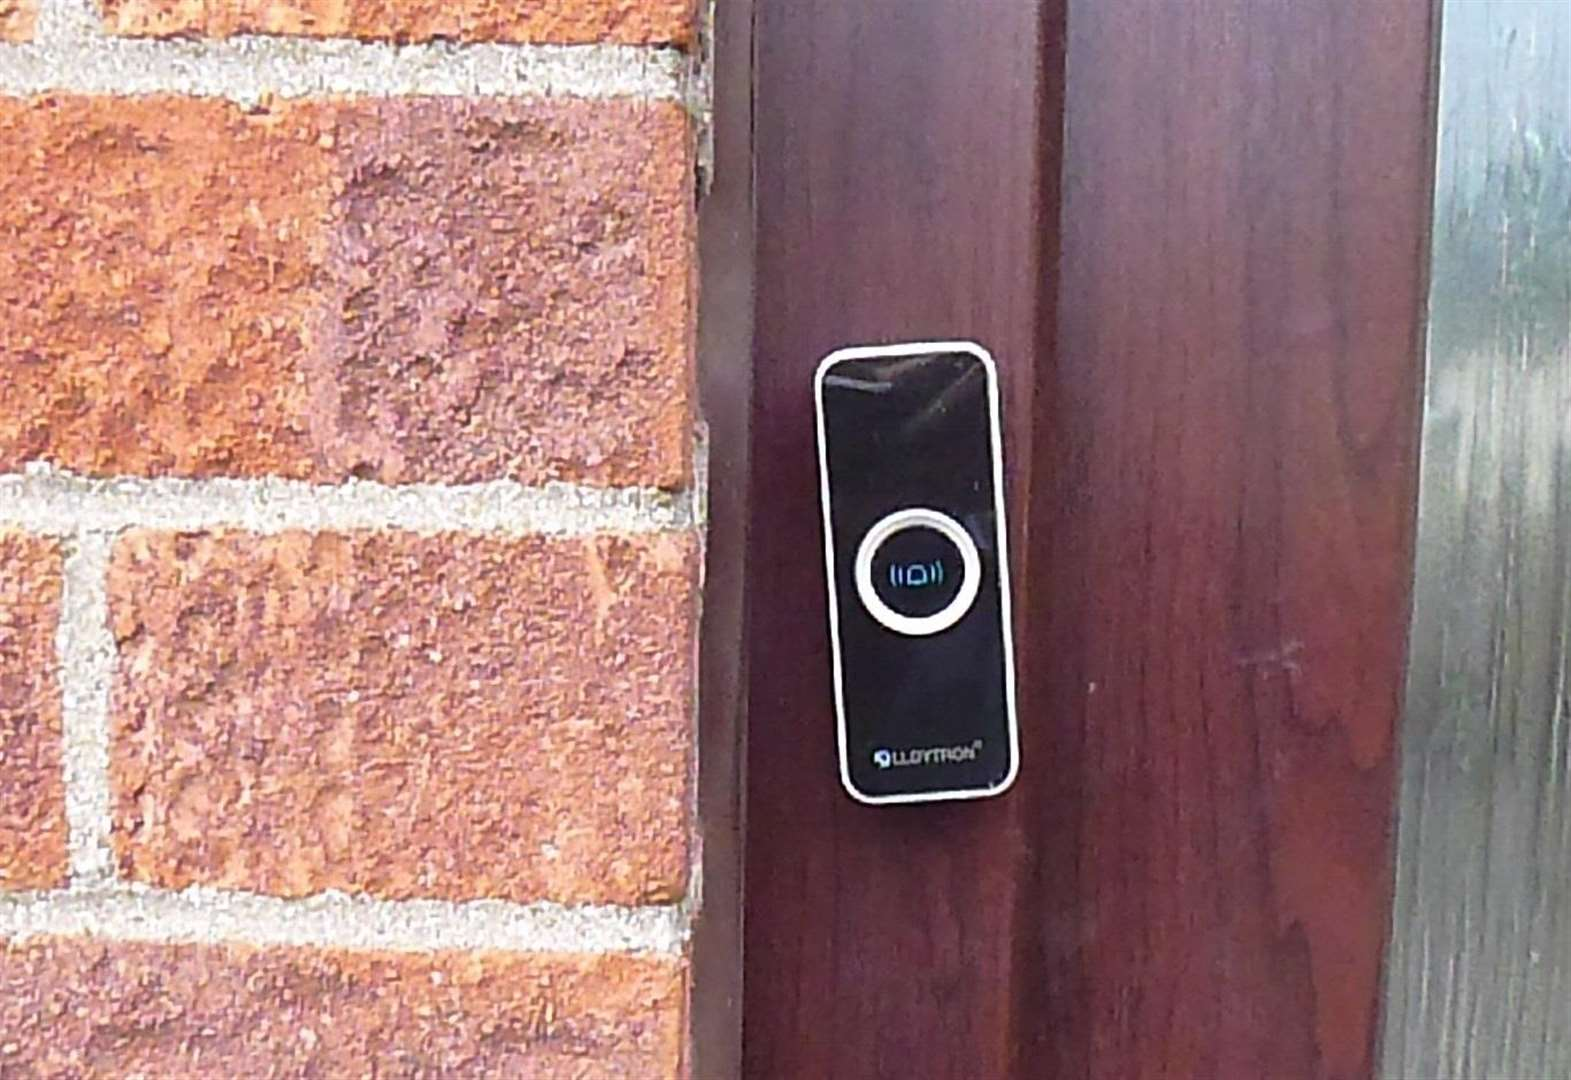 WARD'S WORLD: New year, new you, new doorbell